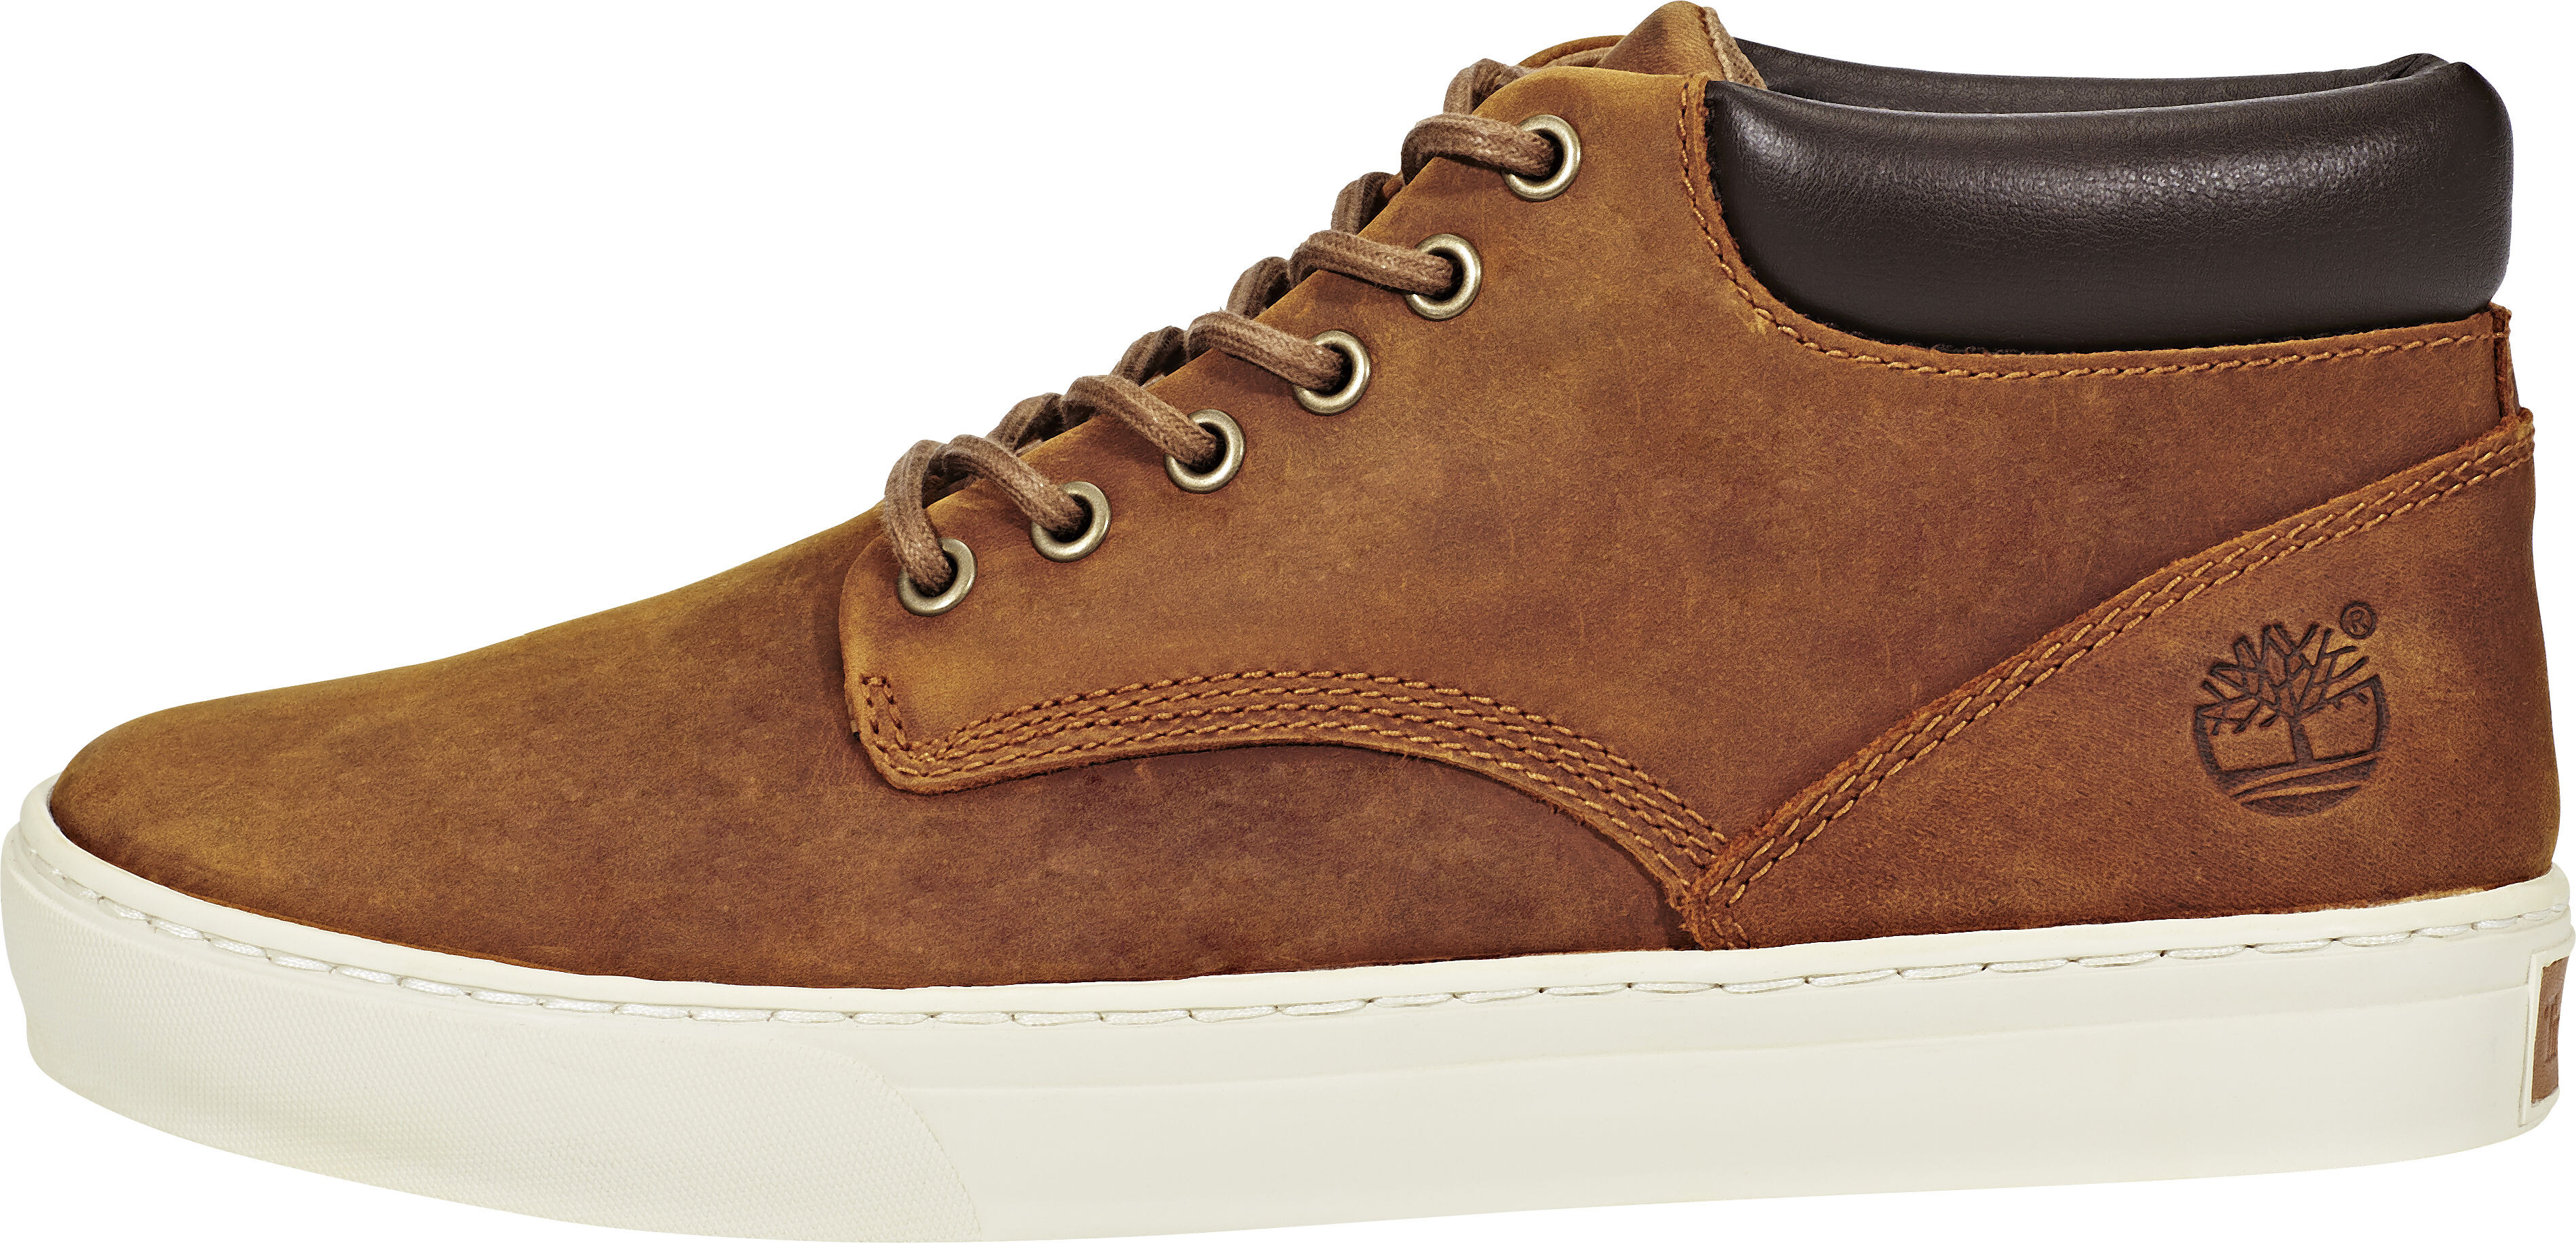 best sneakers cheaper official Timberland Adventure 2.0 Cupsole Chukka Shoes Men glazed ginger roughcut